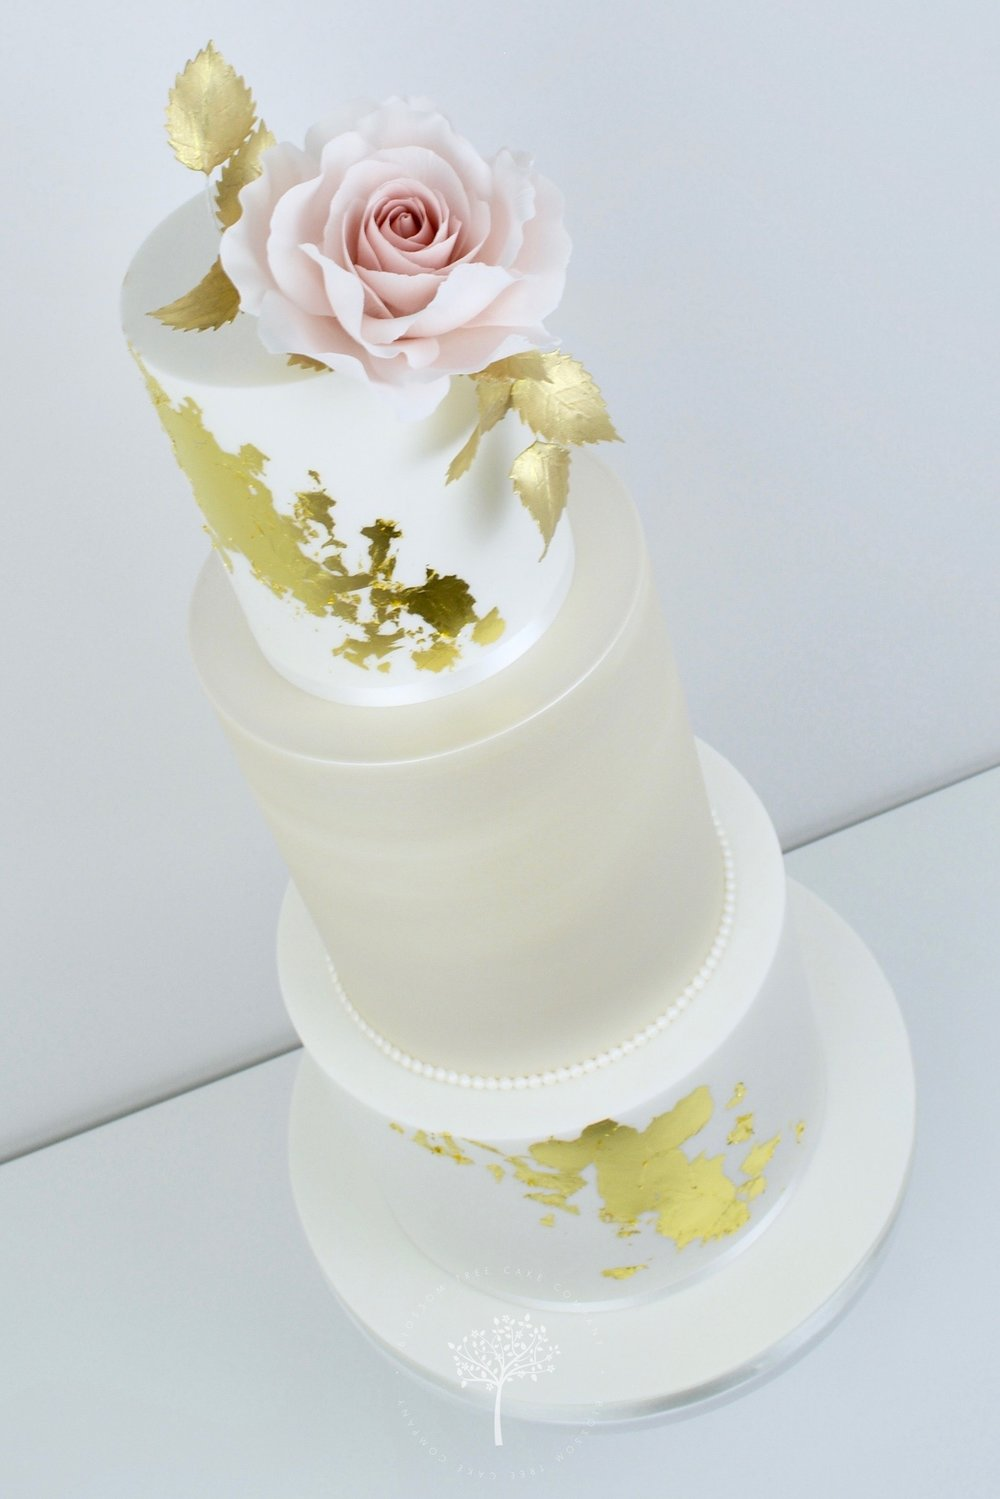 Dusky Blue and Peony wedding cake by Blossom Tree Cake Company Harrogate North Yorkshire - angle.jpg